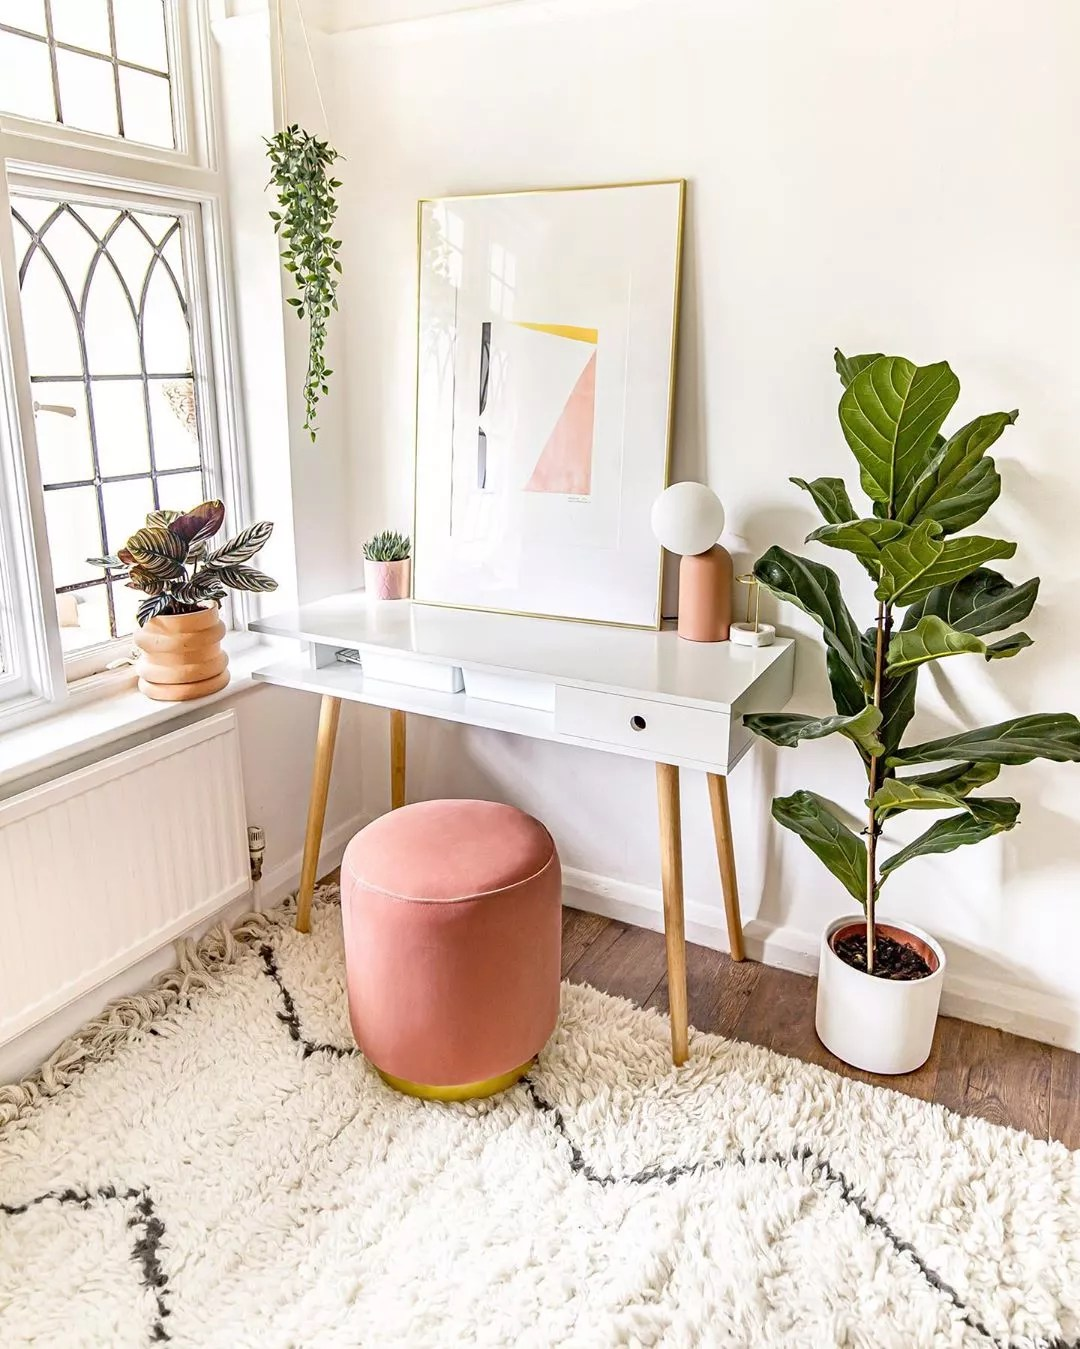 modern home office with stool seat and plants placed around photo by Instagram user @homewithkelsey